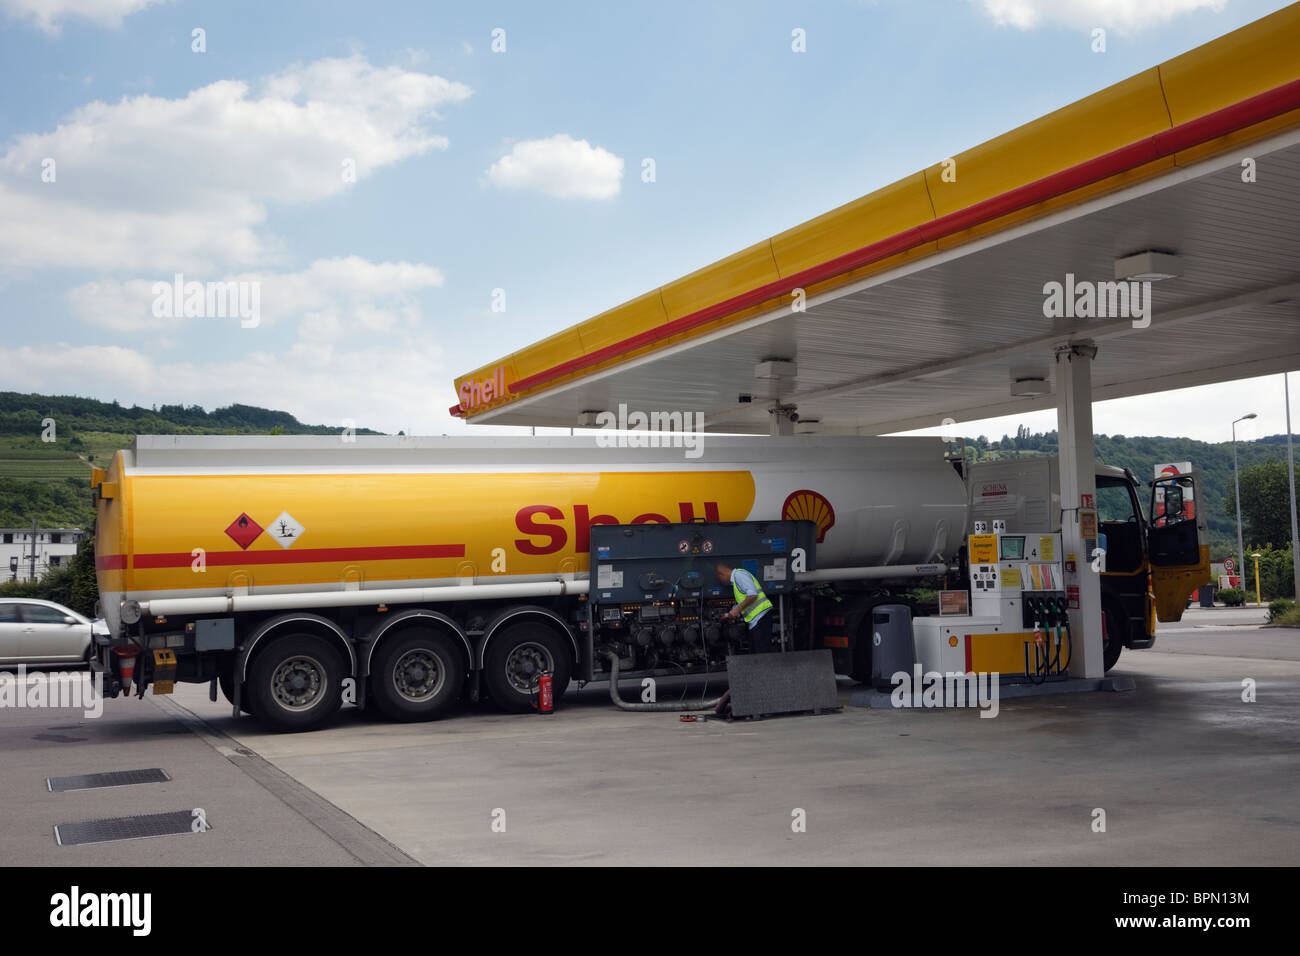 Luxembourg, Europe. Shell oil tanker delivering petrol to a filling station - Stock Image